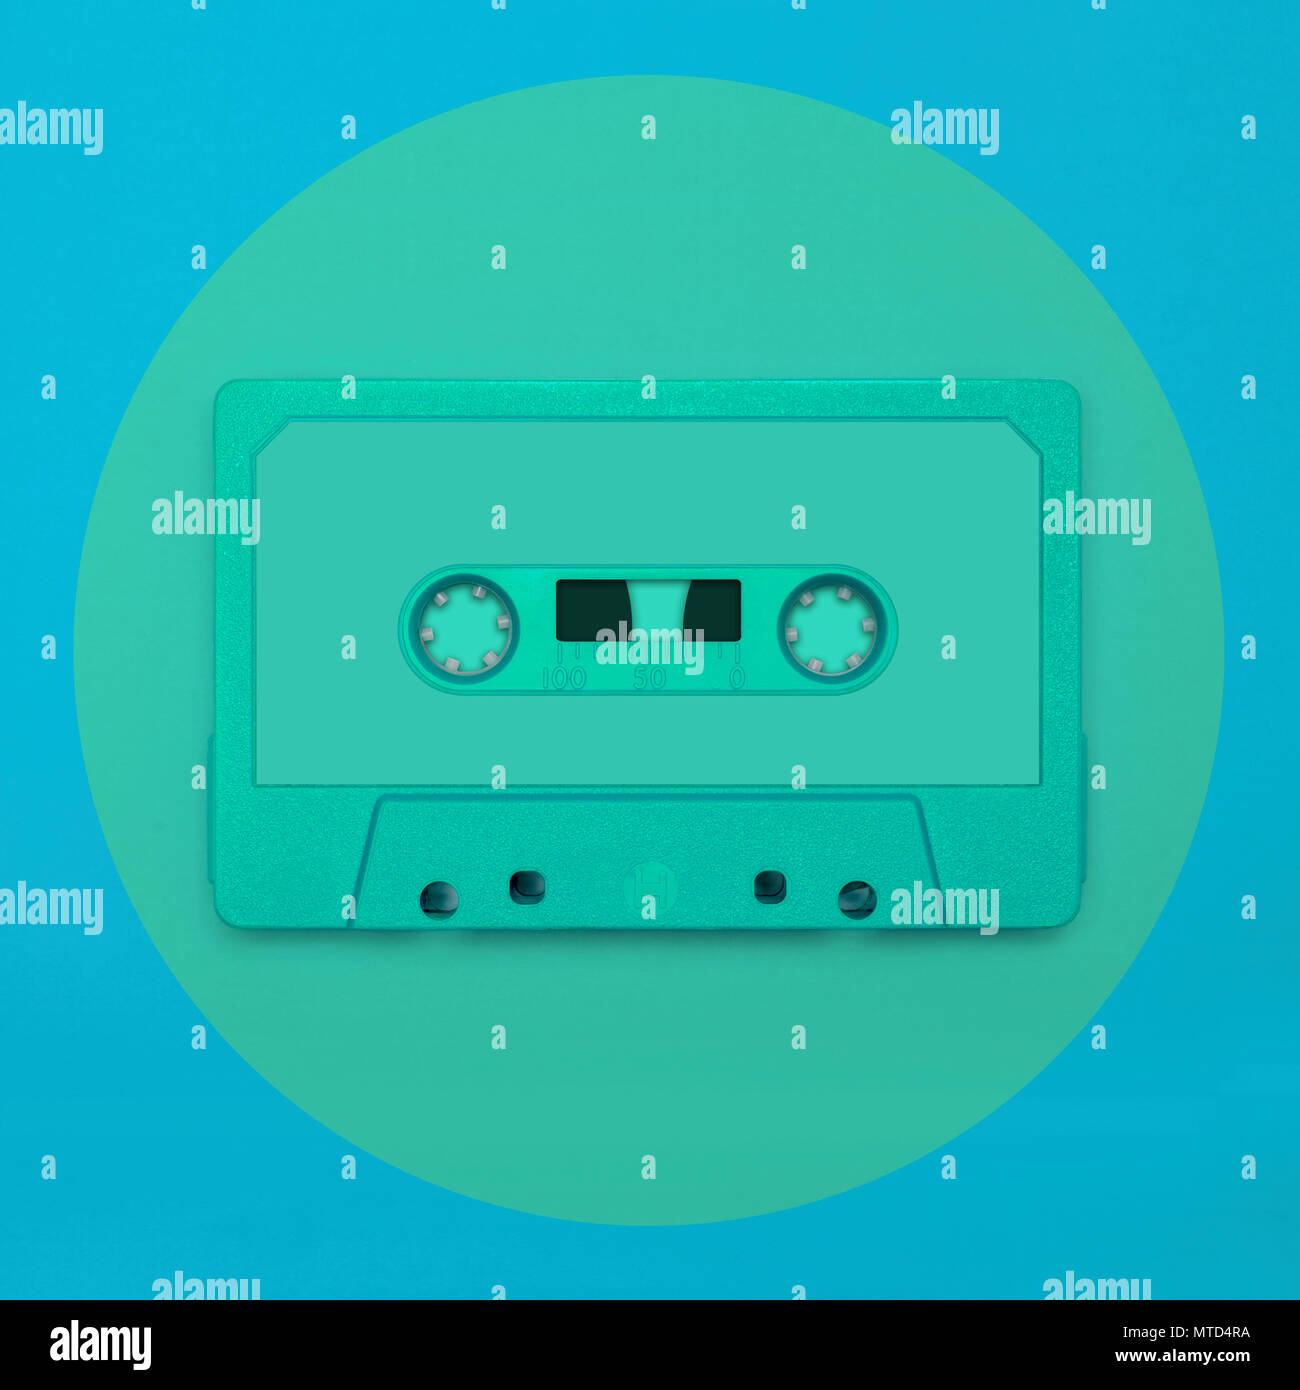 Cassette tape close up, blank for customisation of label, isolated and framed in a circle, for nostalgic creative design web & print - Stock Image